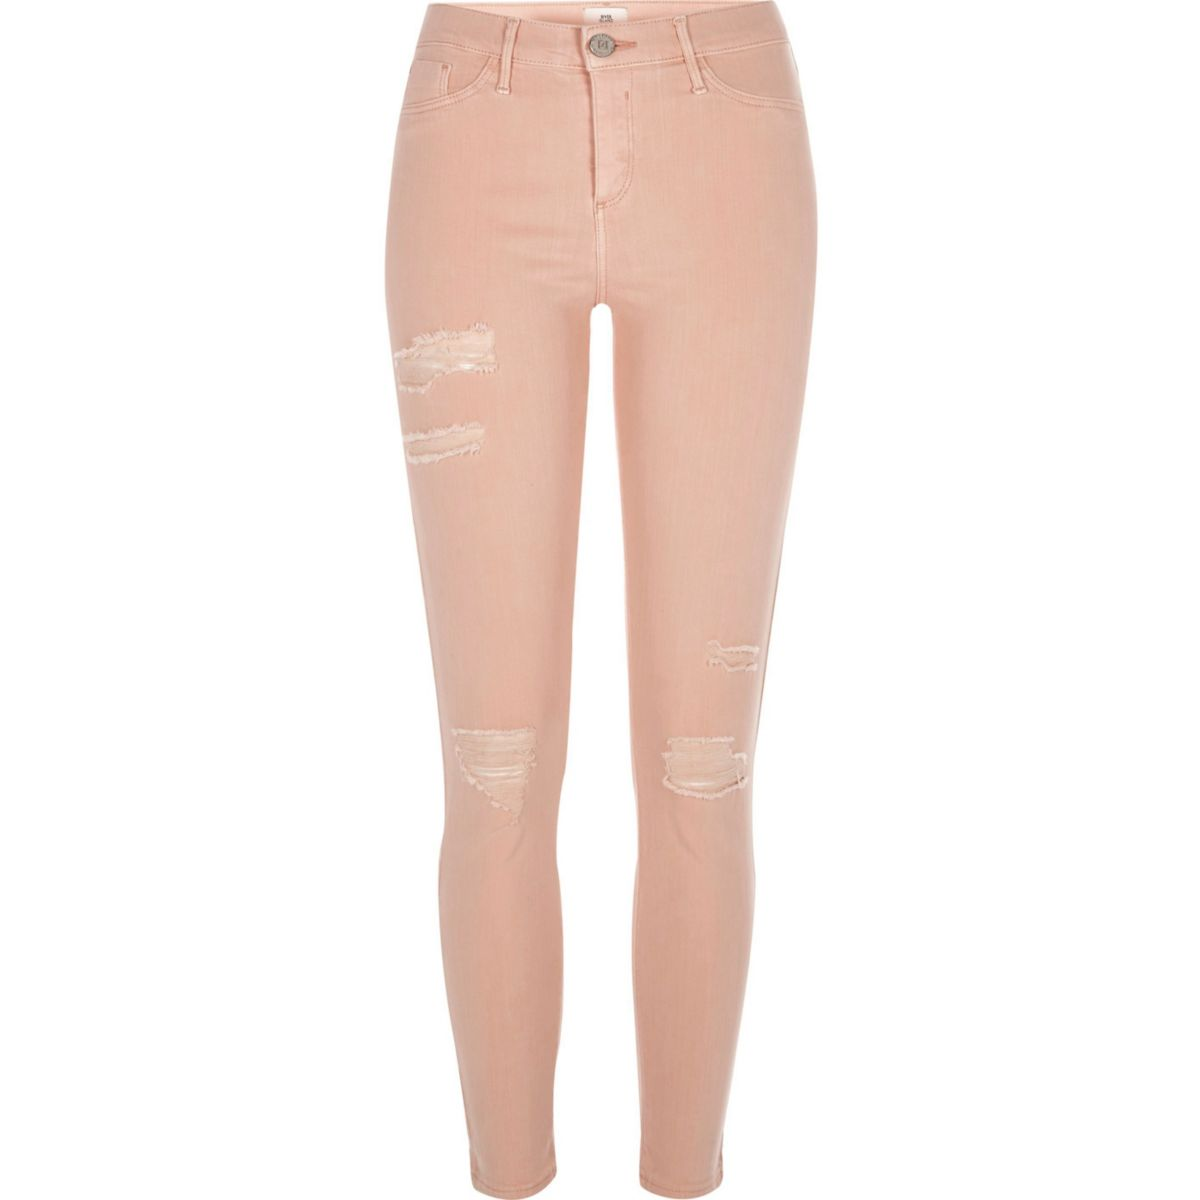 Orange Molly ripped skinny jeggings